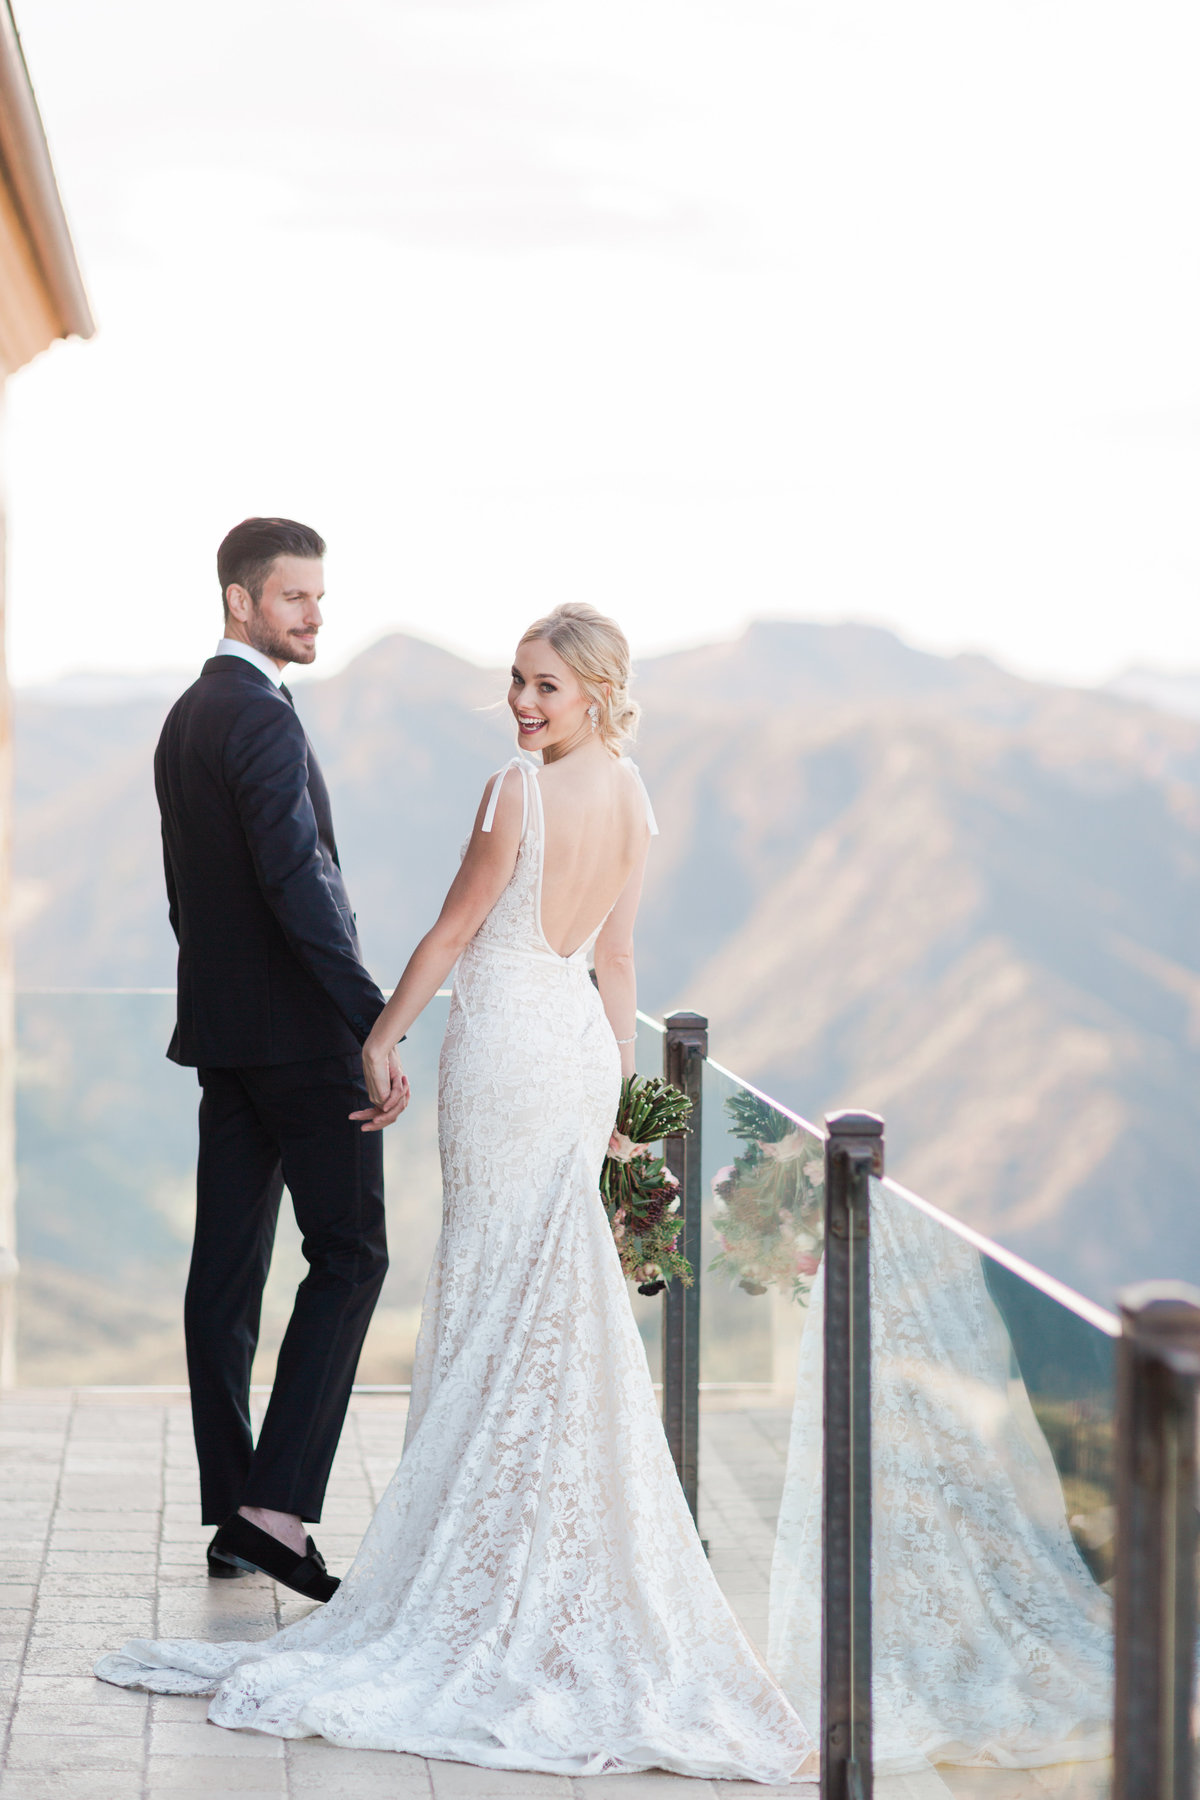 Malibu_Rocky_Oaks_Wedding_Inbal_Dror_Valorie_Darling_Photography - 63 of 160